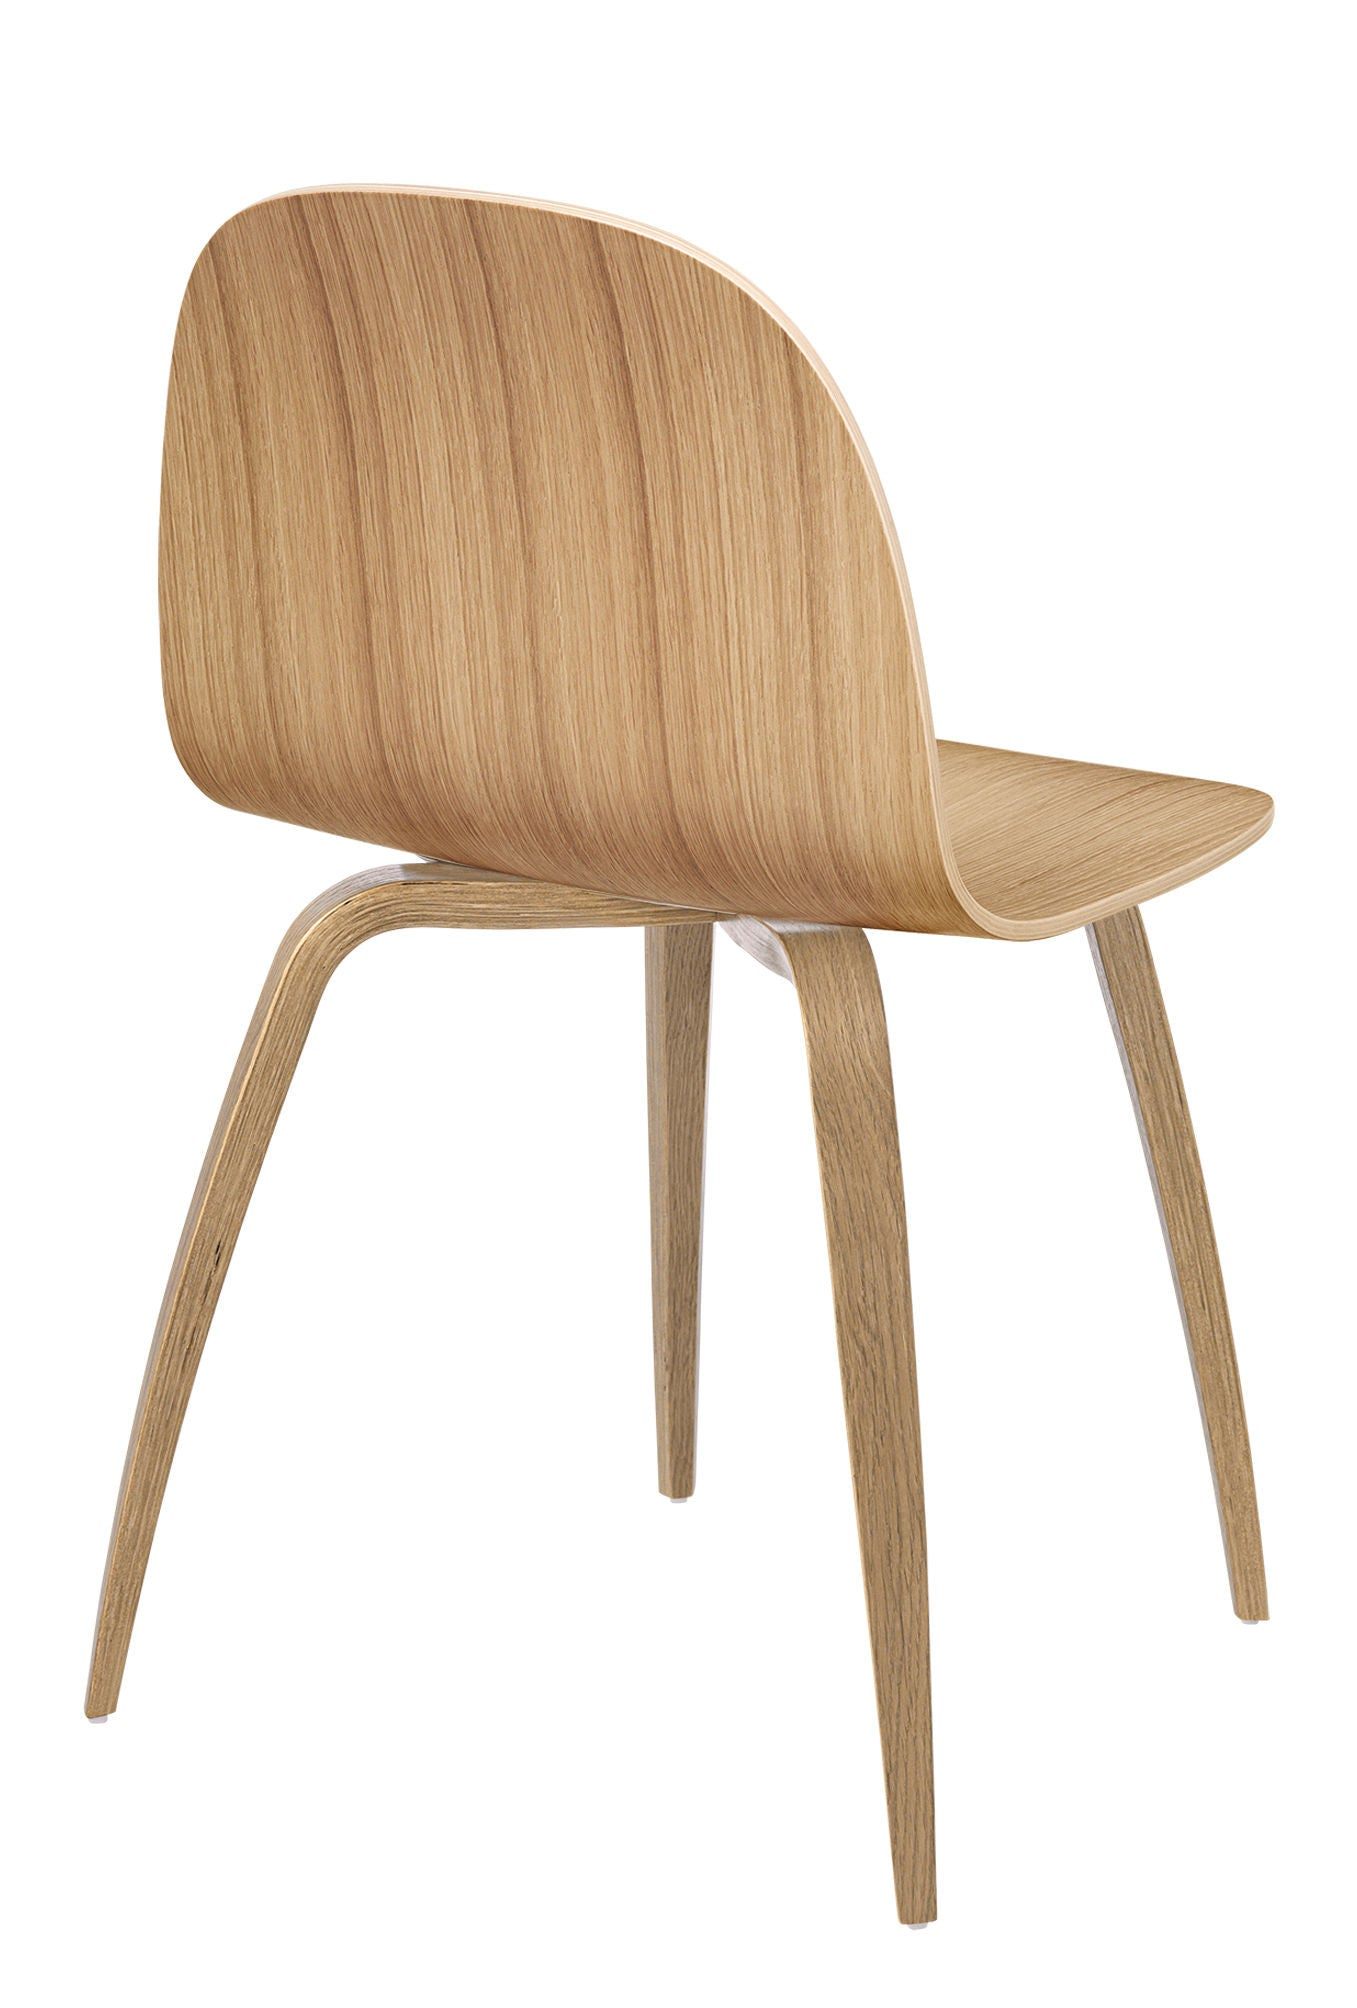 2D Dining Chair - Un-upholstered Oak base, Oak shell fra GUBI